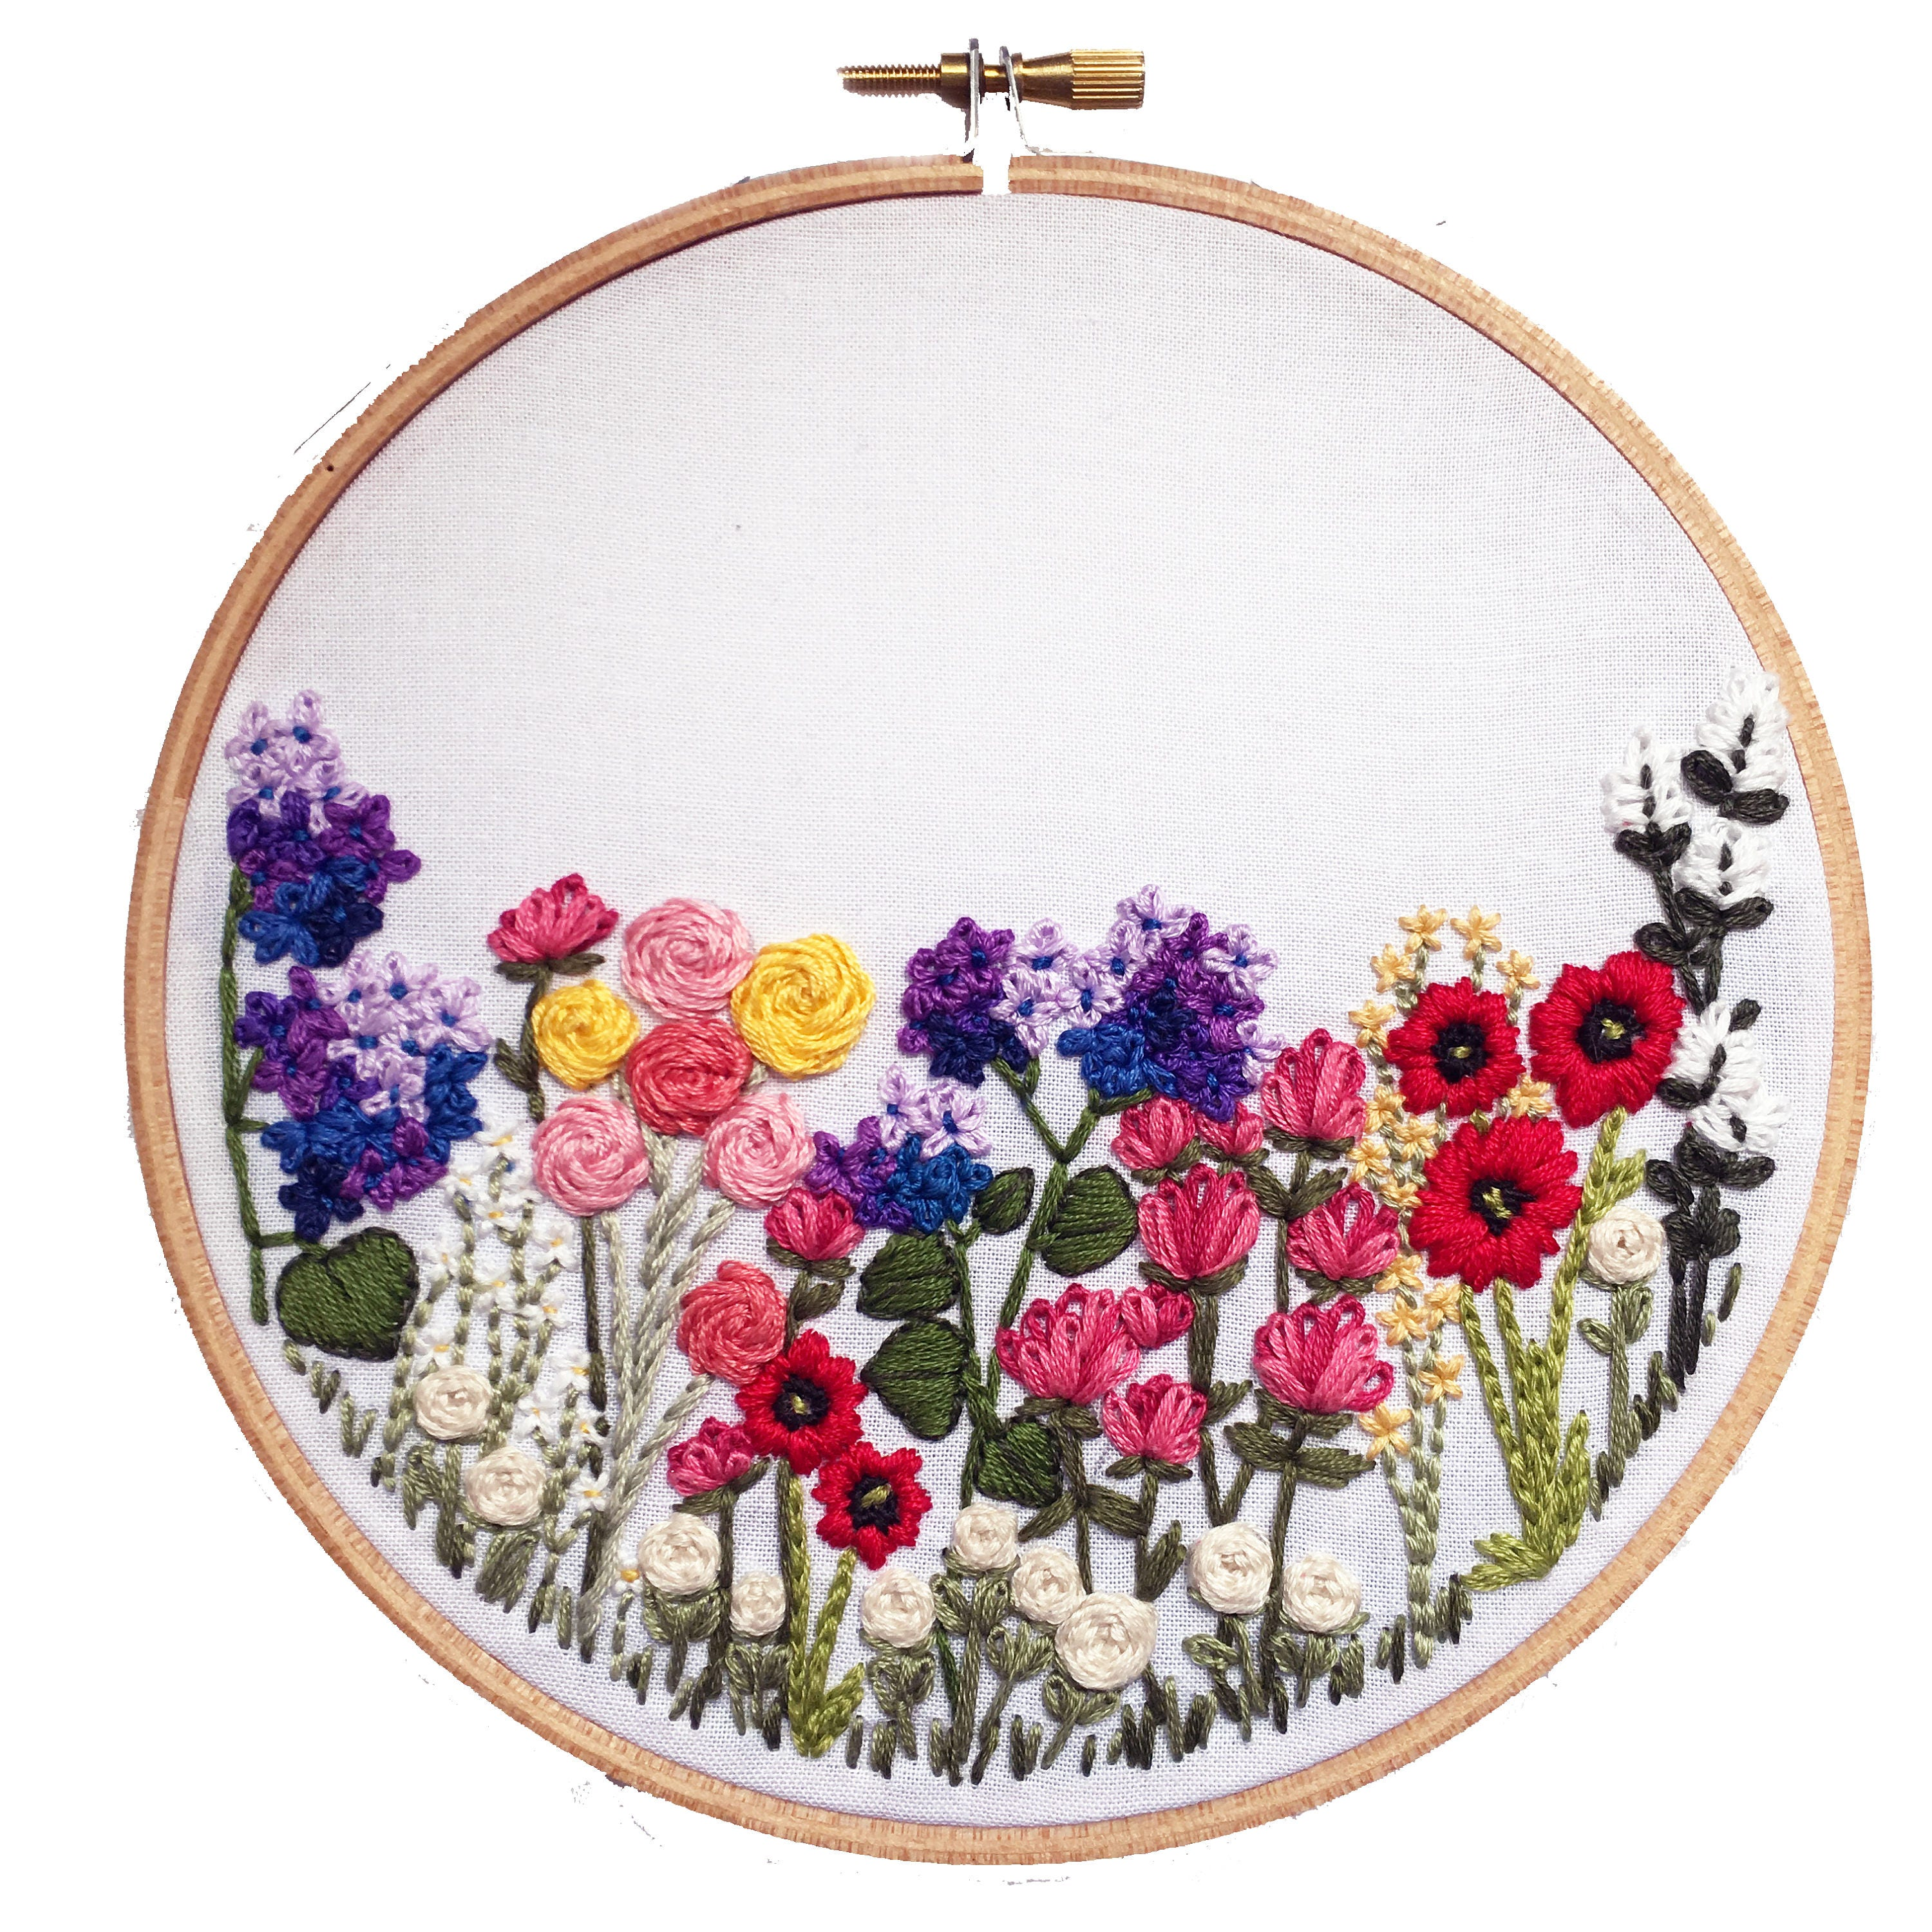 Embroidery Kit // Embroidery Supplies Hand-Embroidery Kit DIY Embroidery Flower Embroidery ...